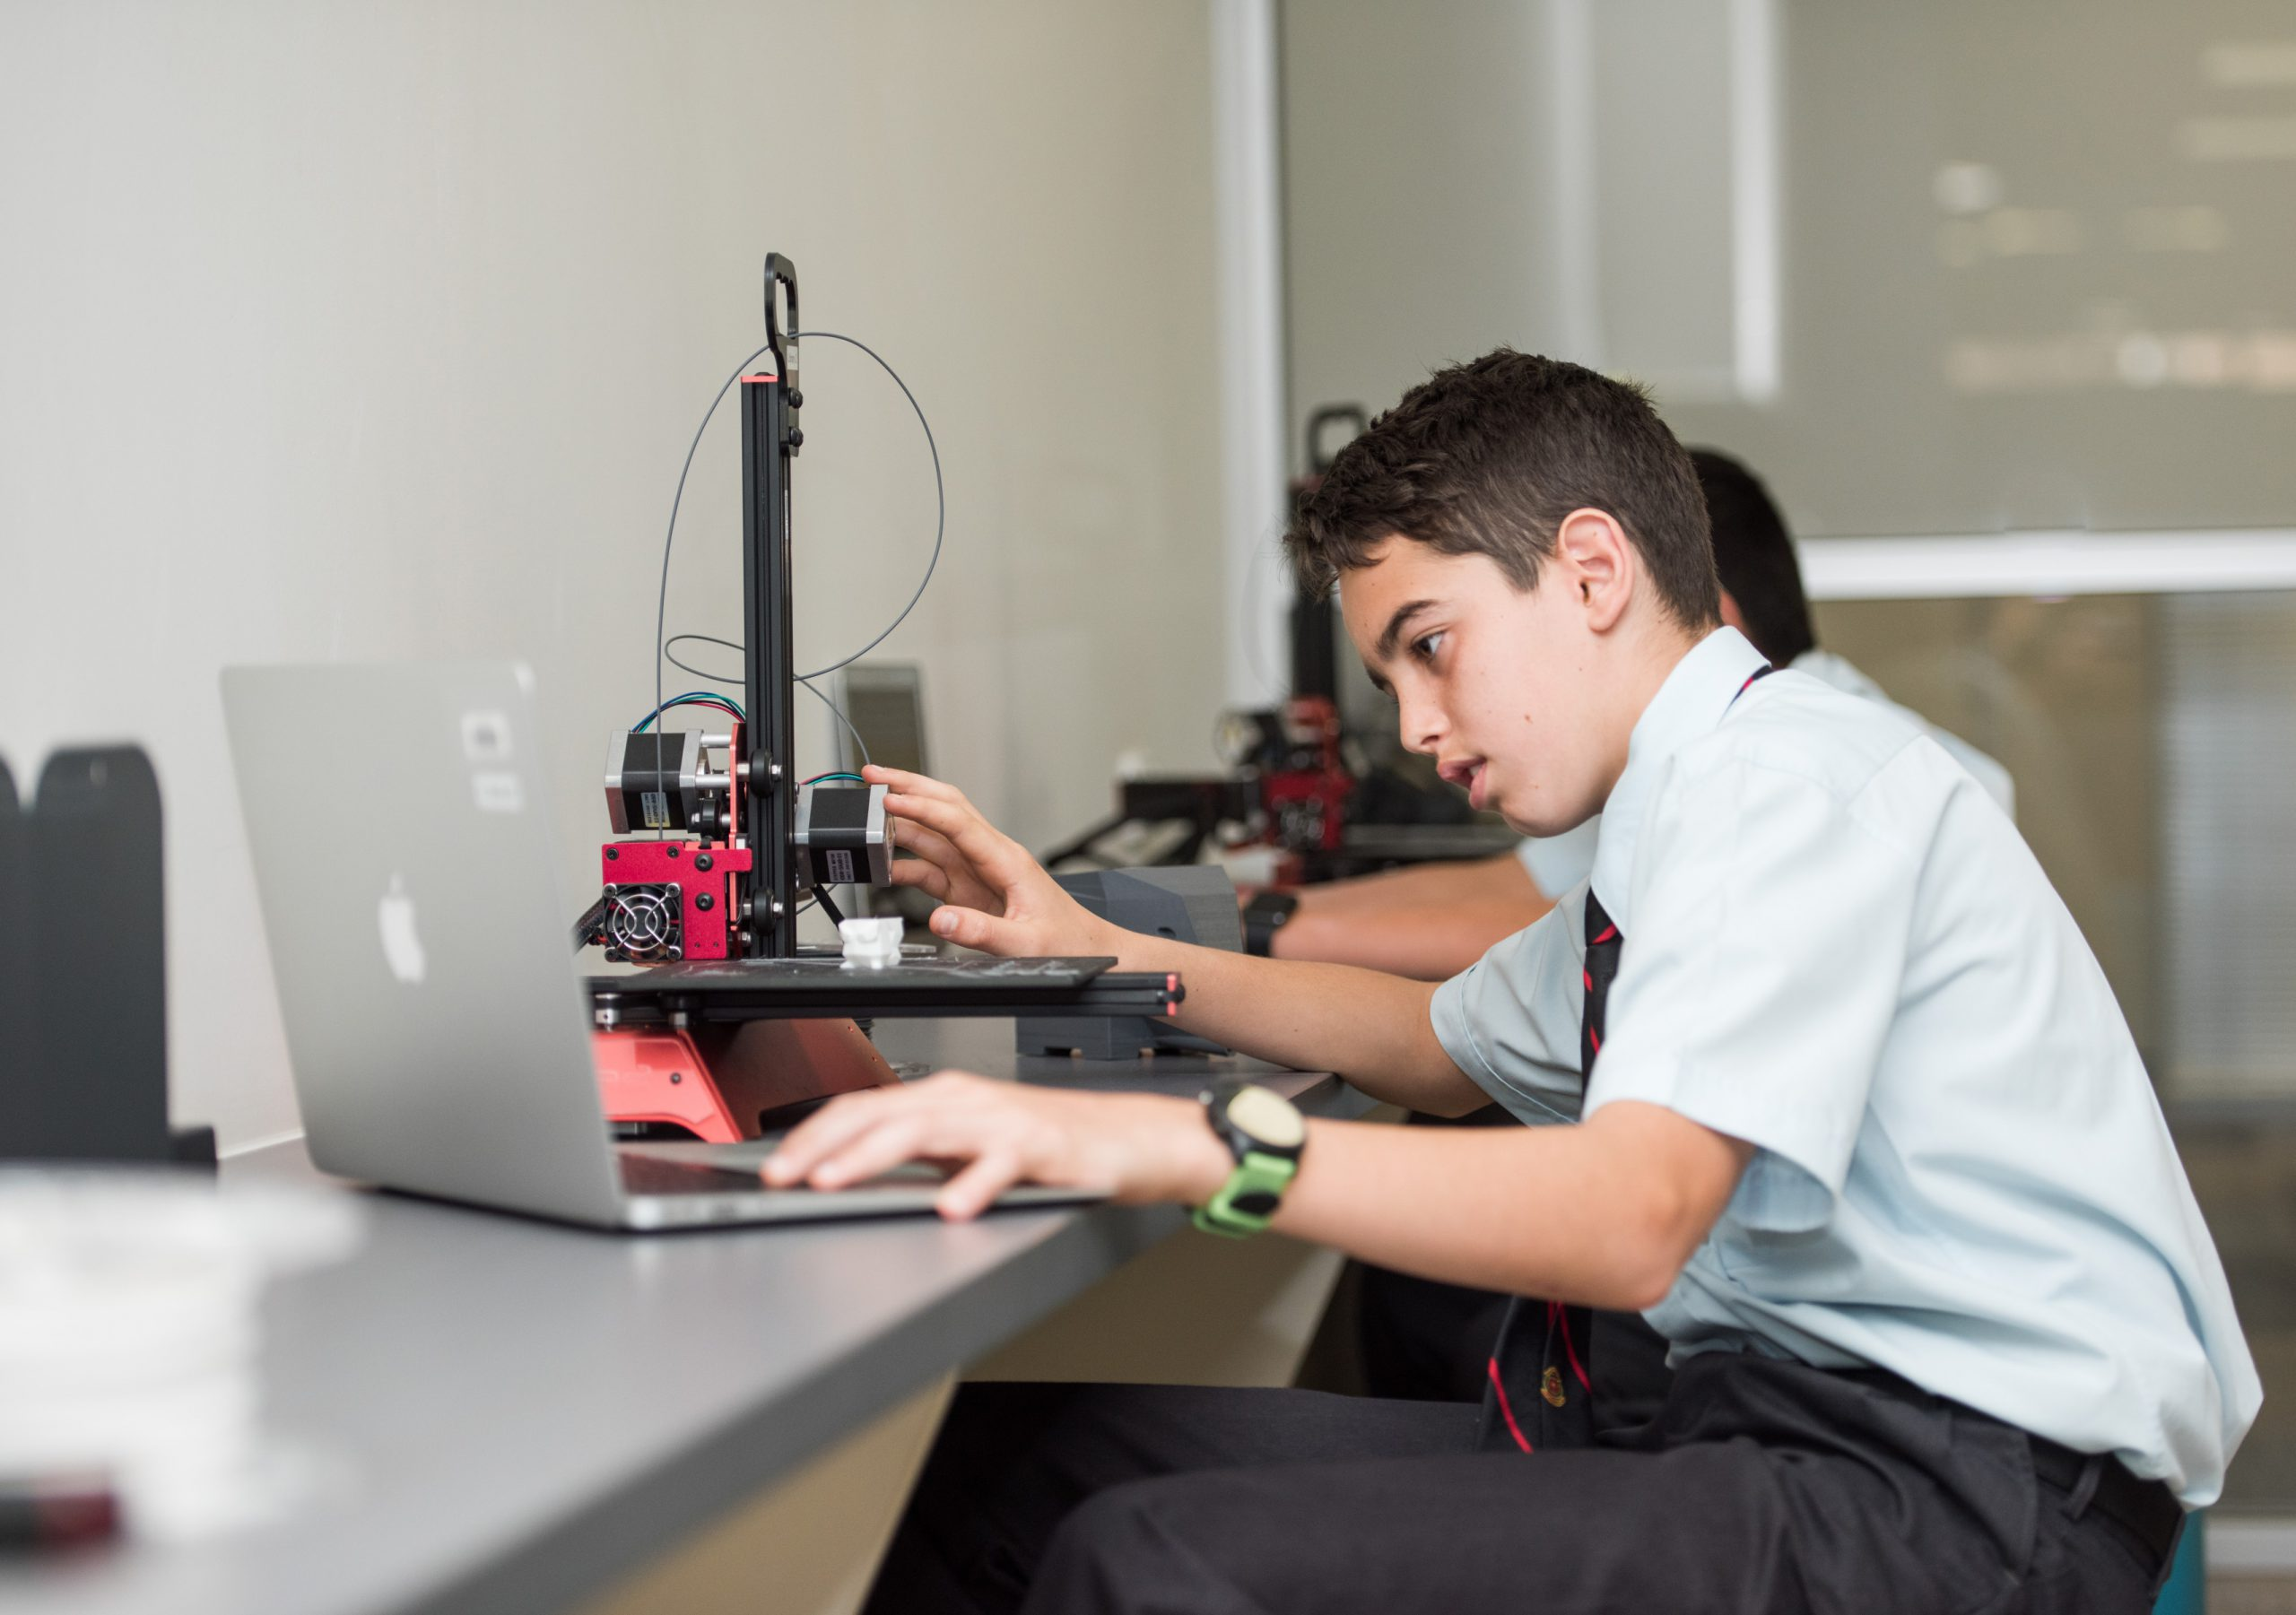 A student focuses on his technology project